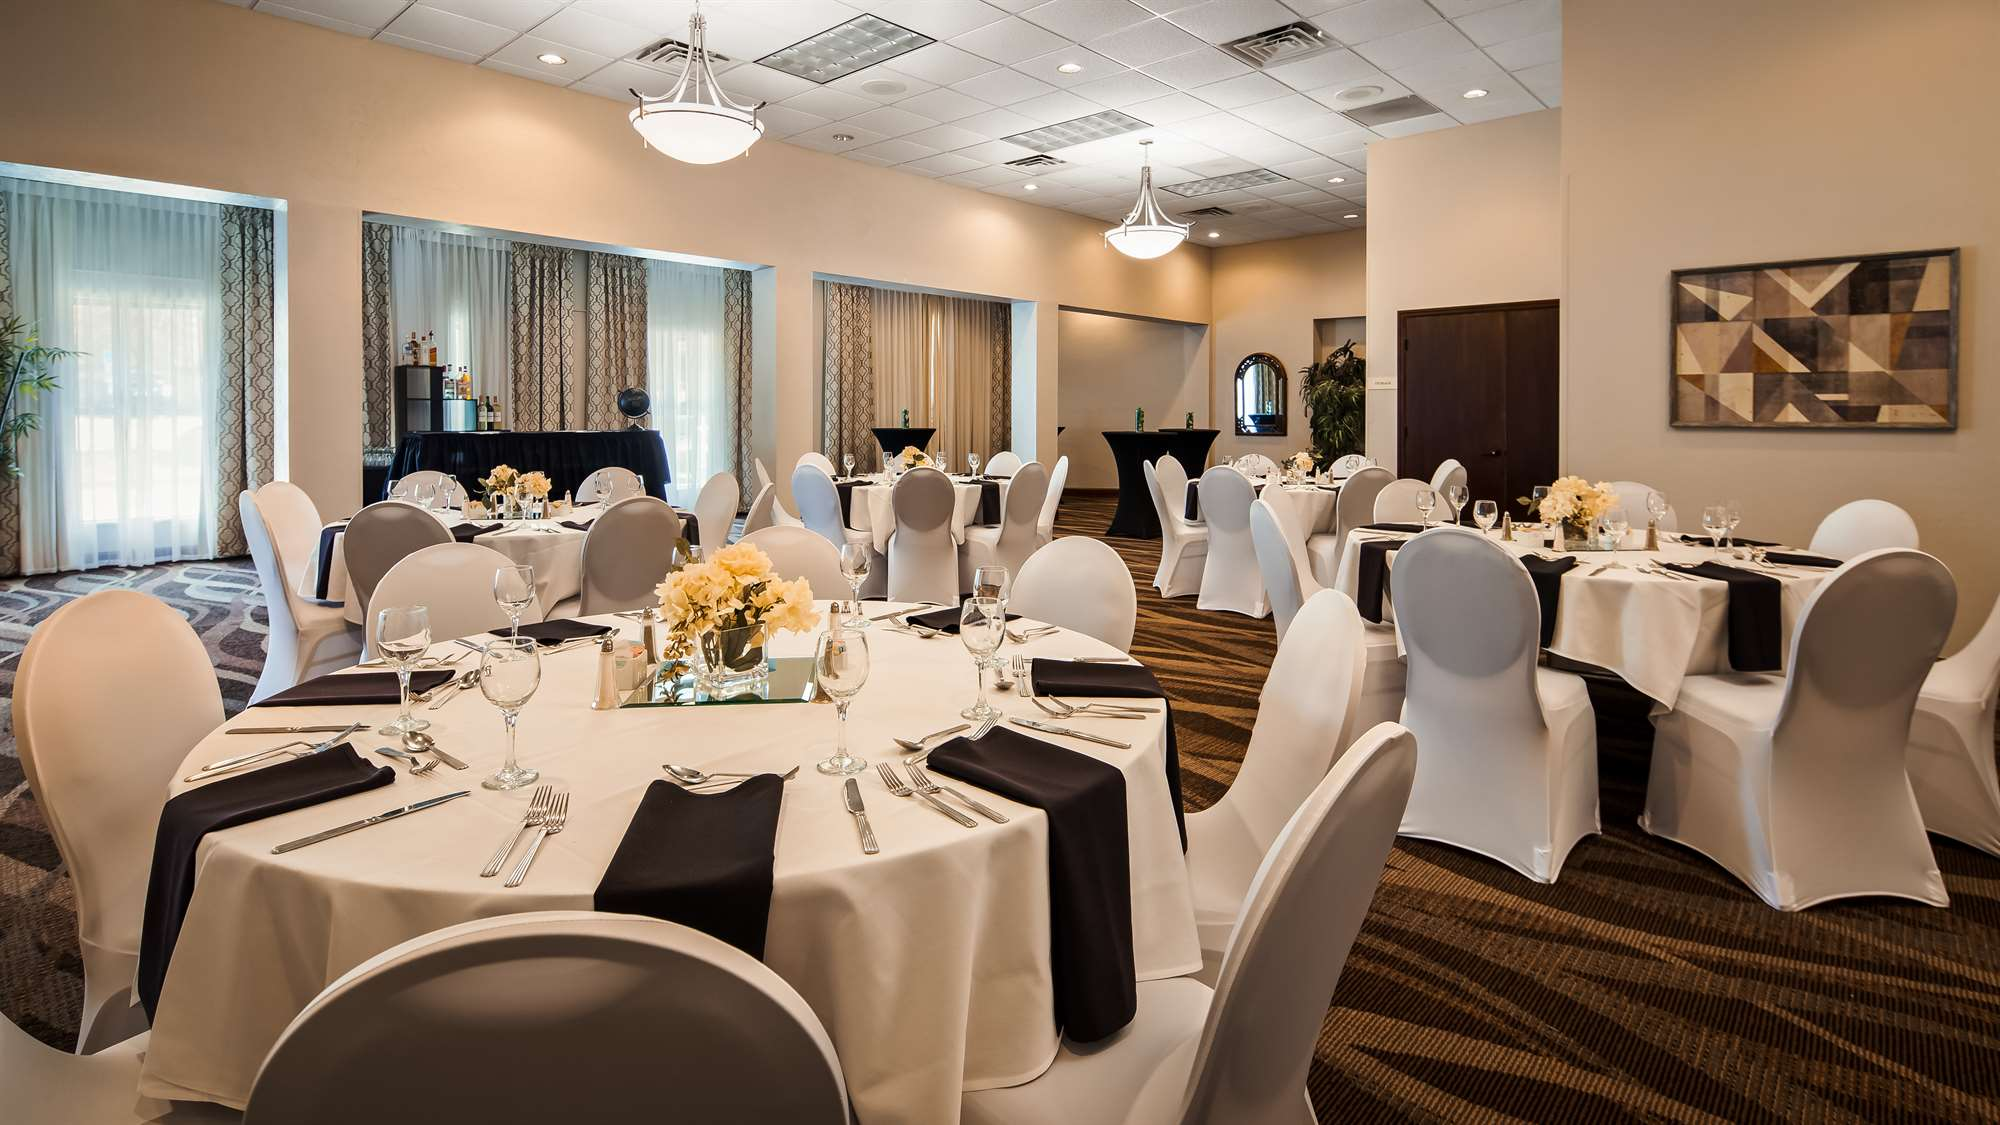 Dining area of Best Western Gateway Grand in Gainesville, FL